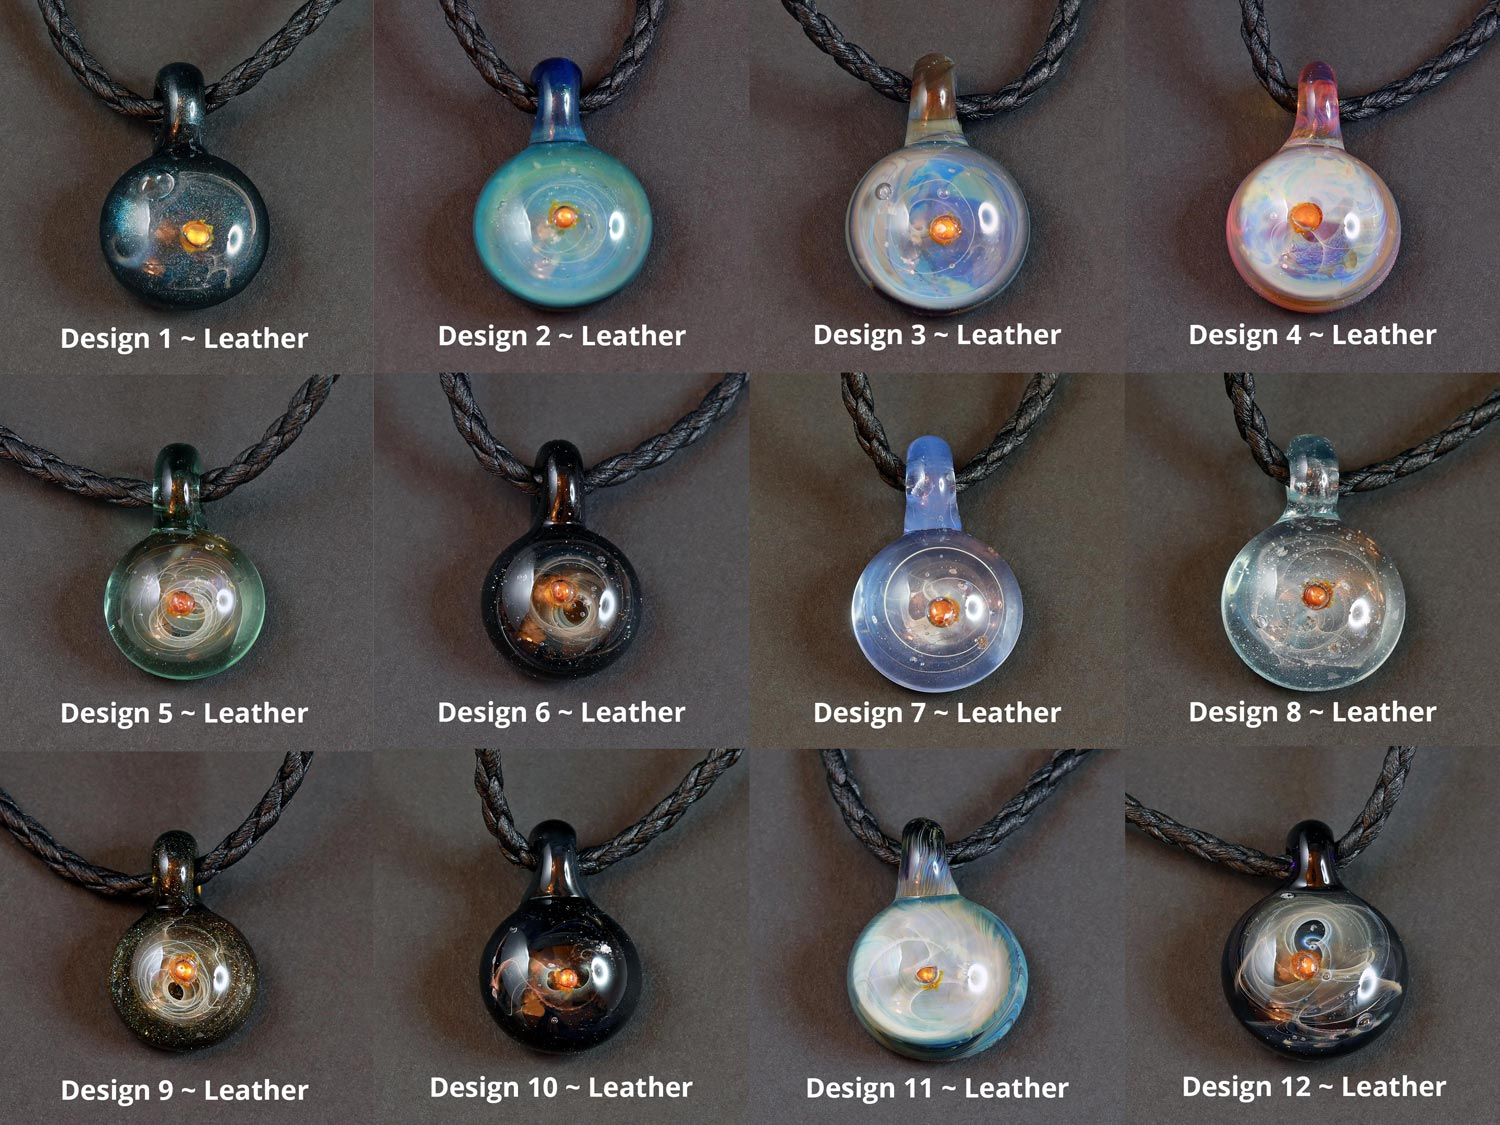 Life Force Jewellery Necklace Pendants w/ Leather Cords - Overview of All Design Options